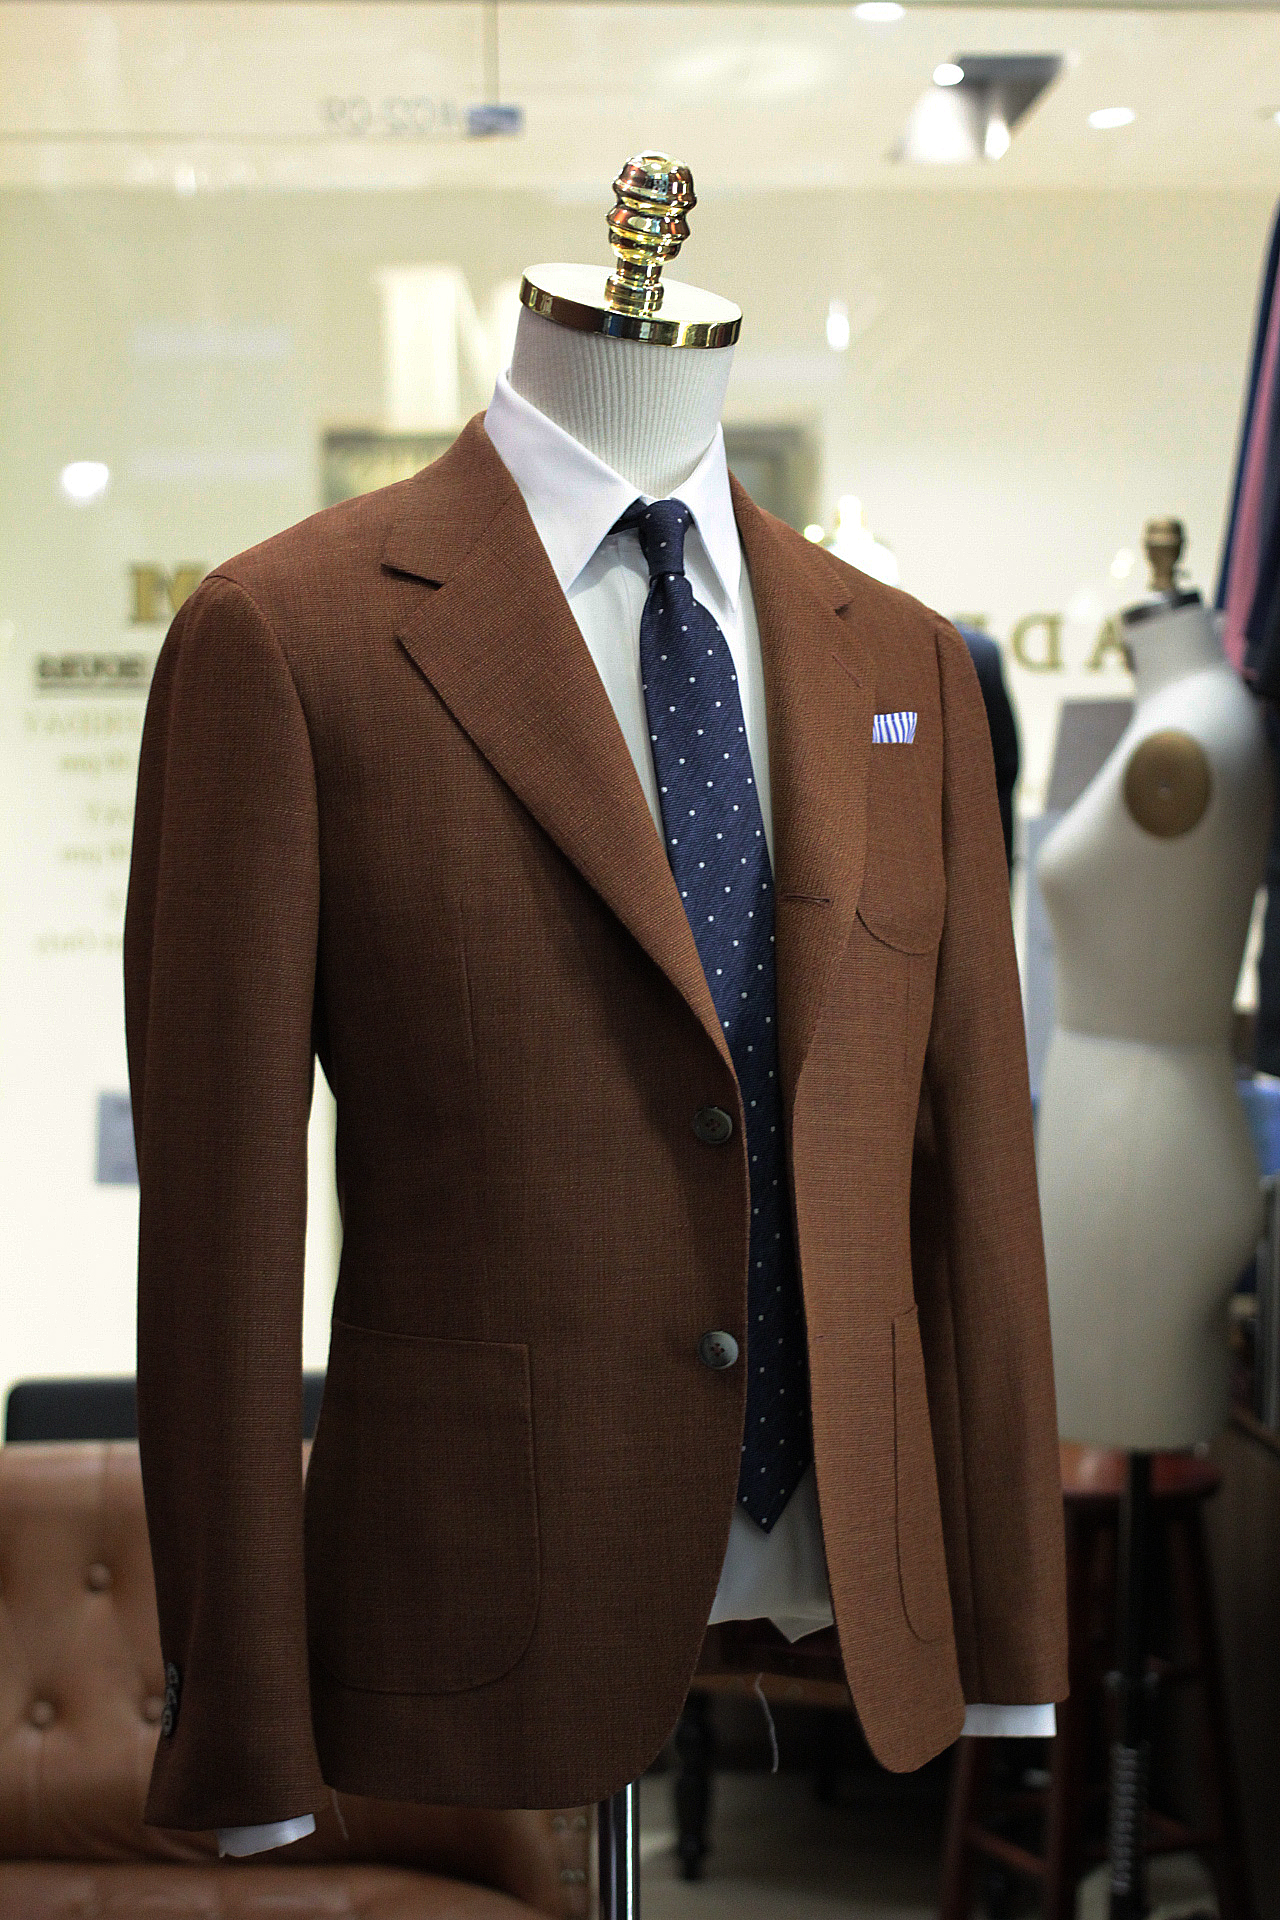 Miami | Made Suits by MESH Blazers HS1730 by Holland & Sherry Hopsack side view.JPG